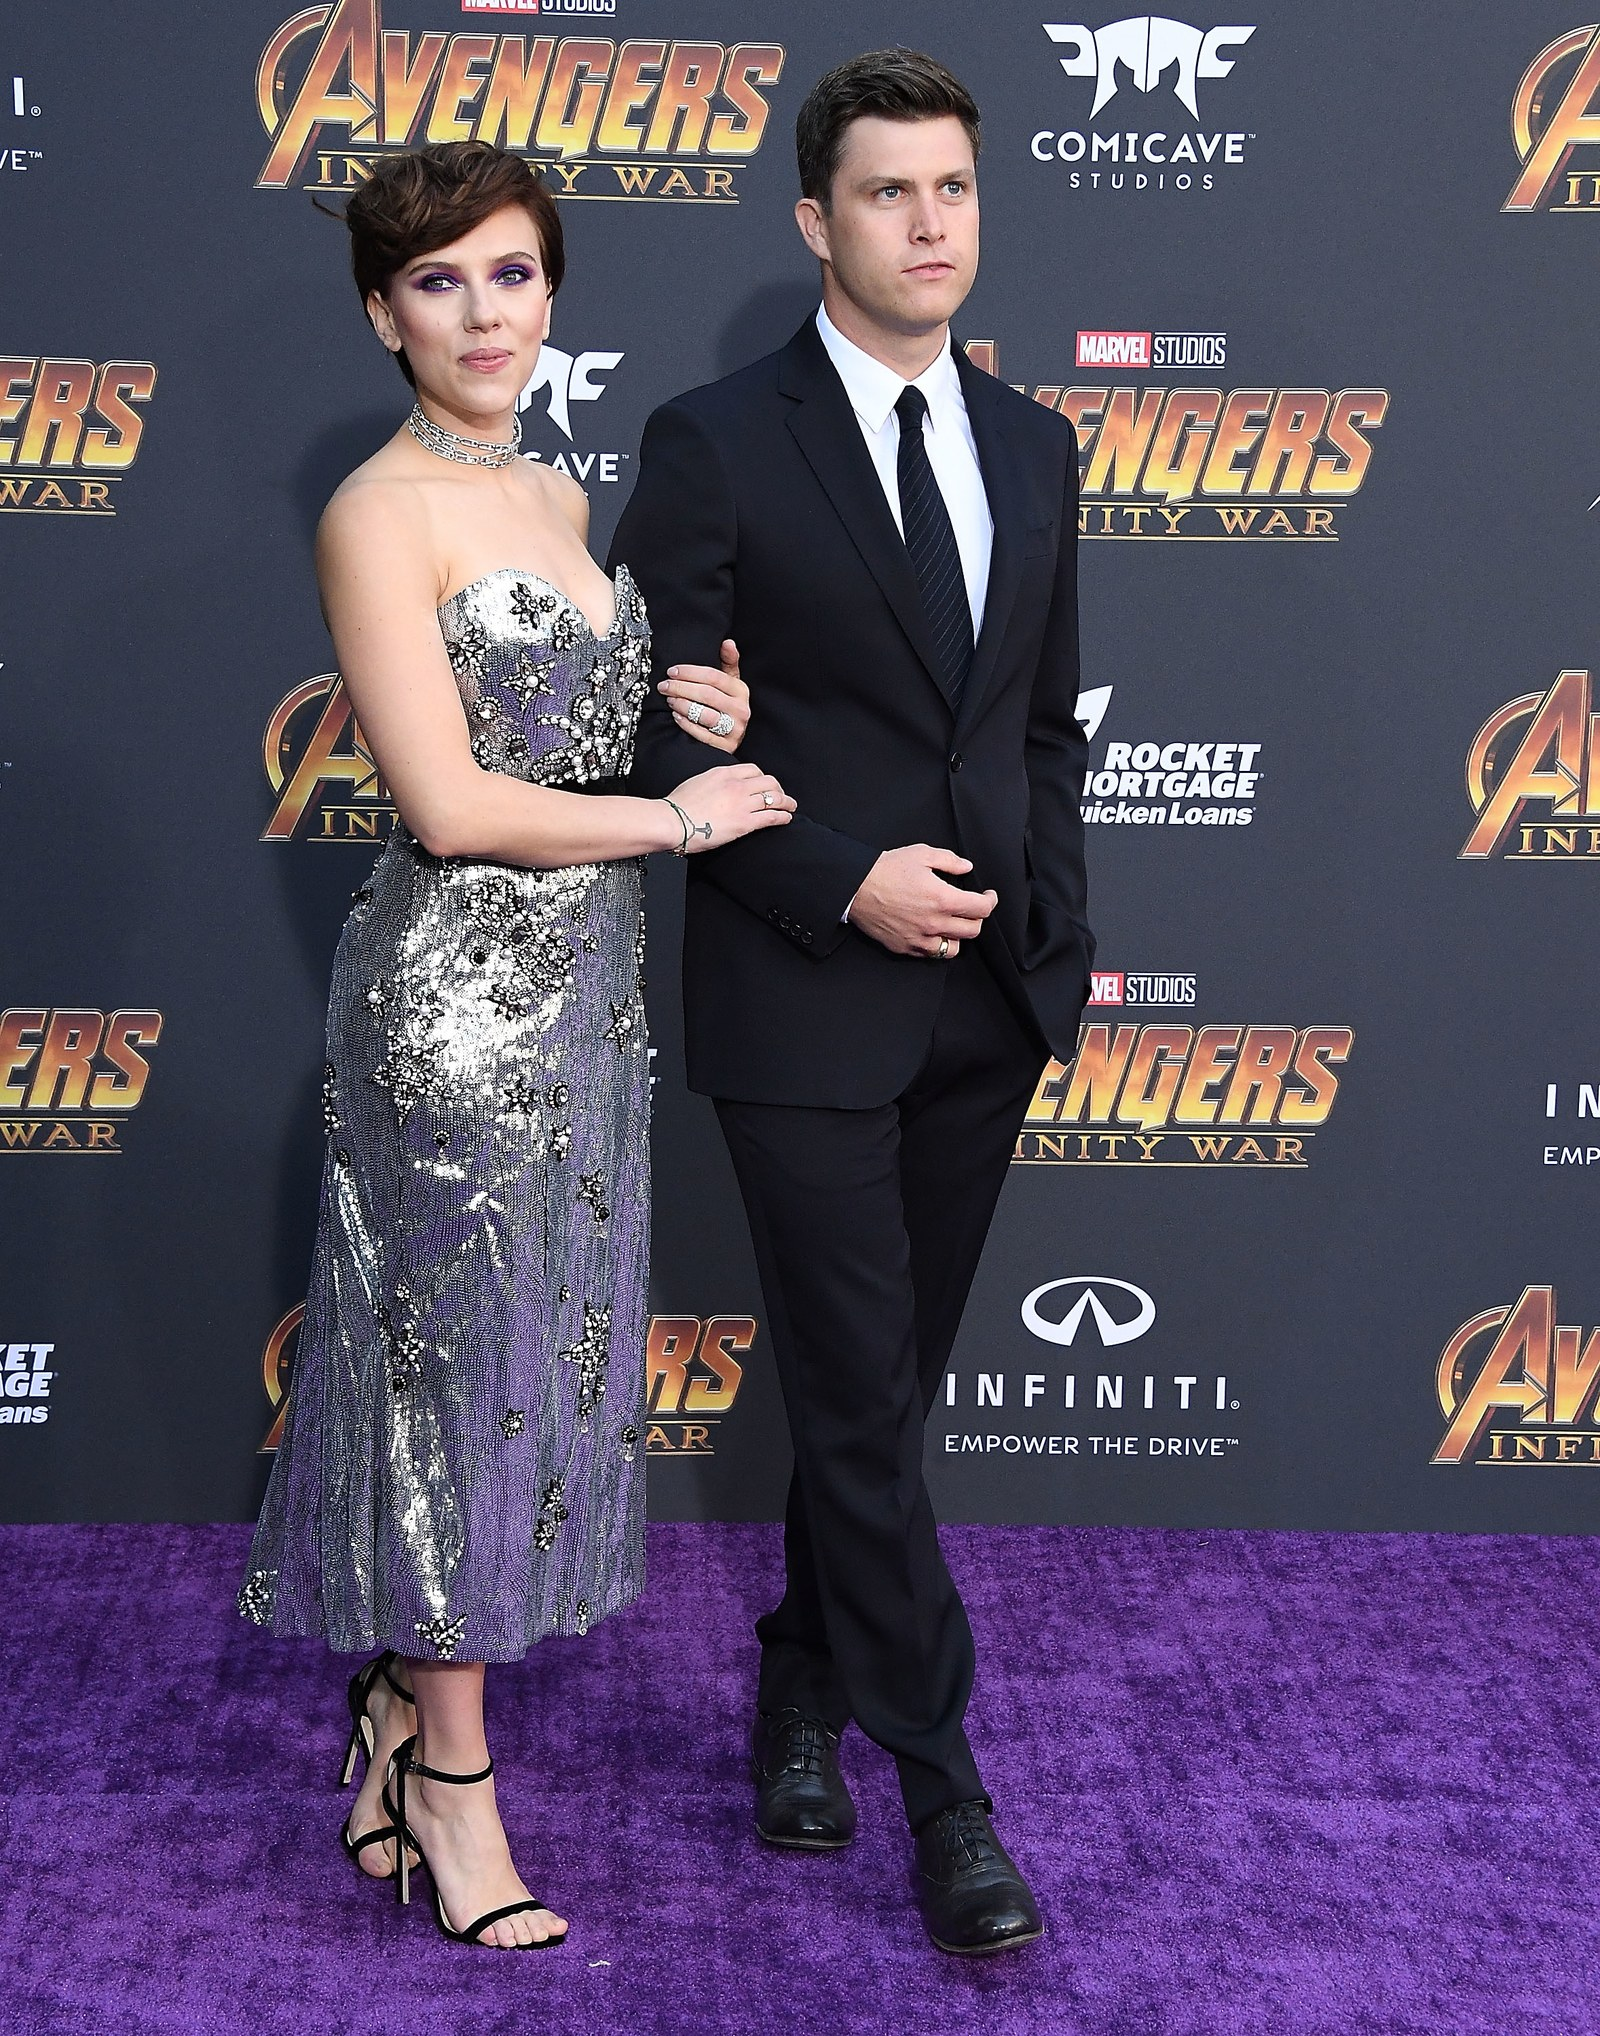 Scarlett Johansson and Colin Jost at the Avengers Infinity War premiere in 2018.